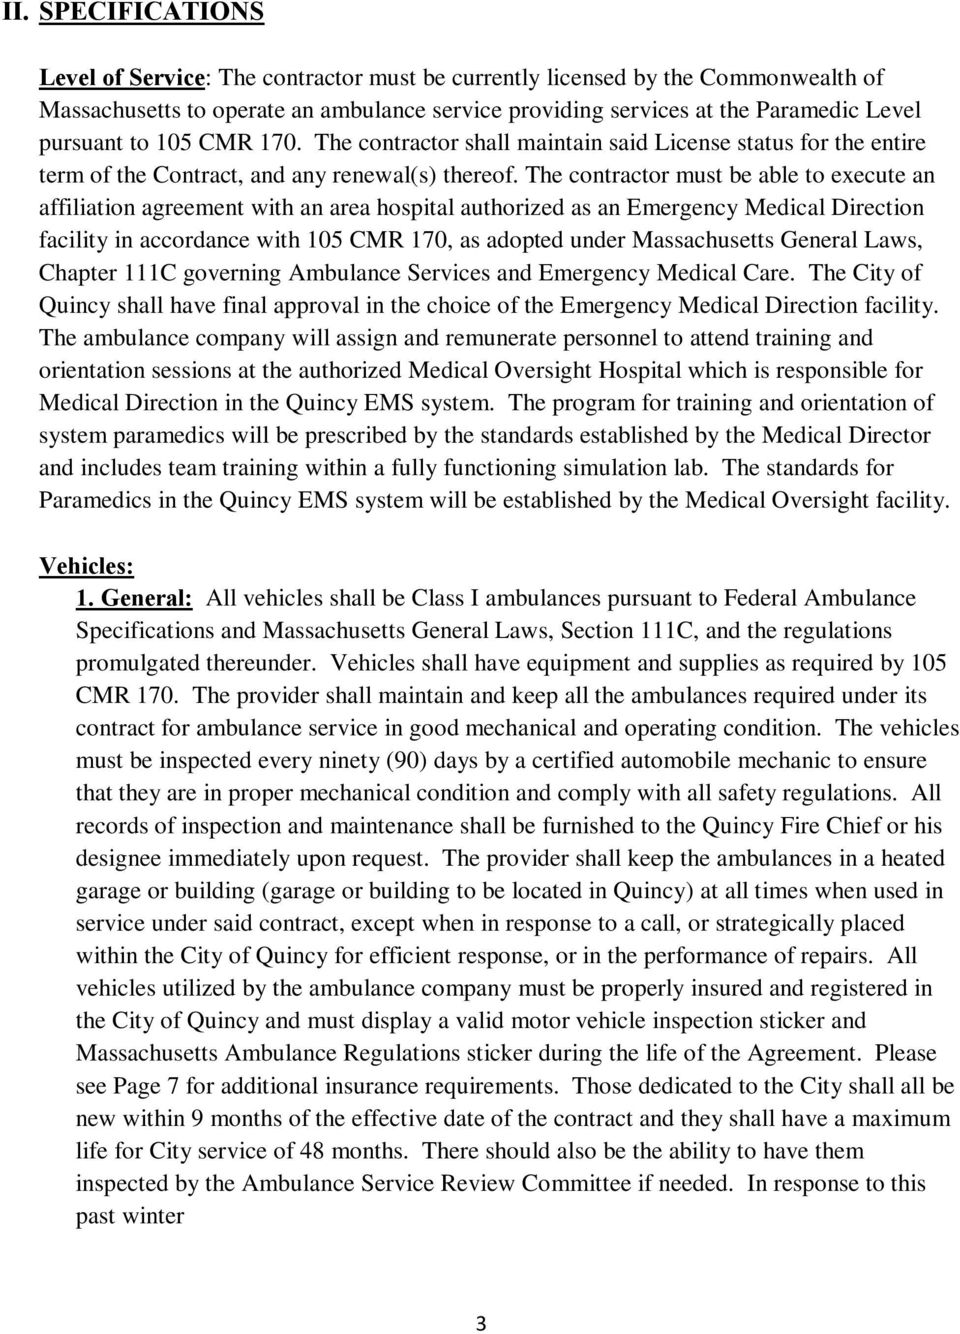 The contractor must be able to execute an affiliation agreement with an area hospital authorized as an Emergency Medical Direction facility in accordance with 105 CMR 170, as adopted under